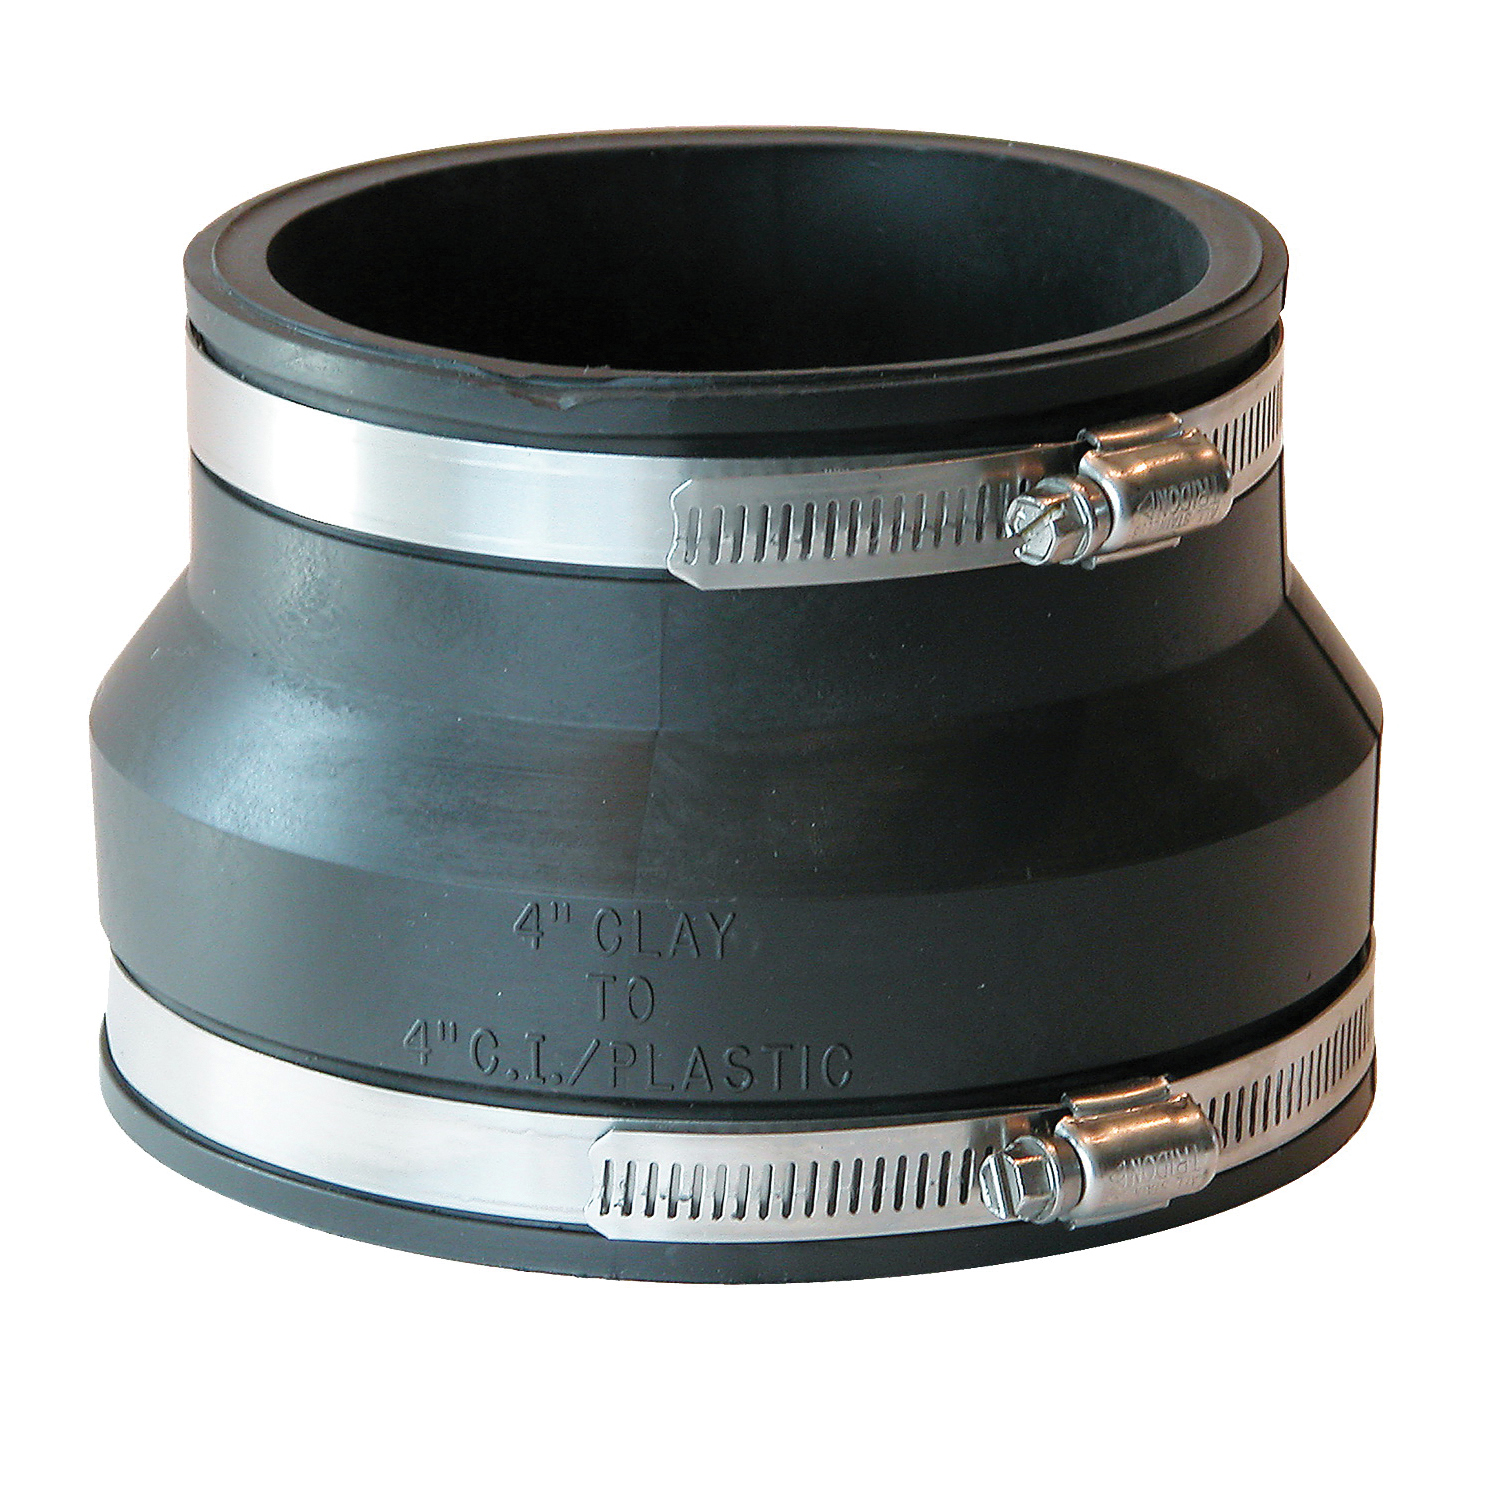 Picture of FERNCO P1002-44 Flexible Pipe Coupling, 4 x 4 in, PVC, Black, 4.3 psi Pressure